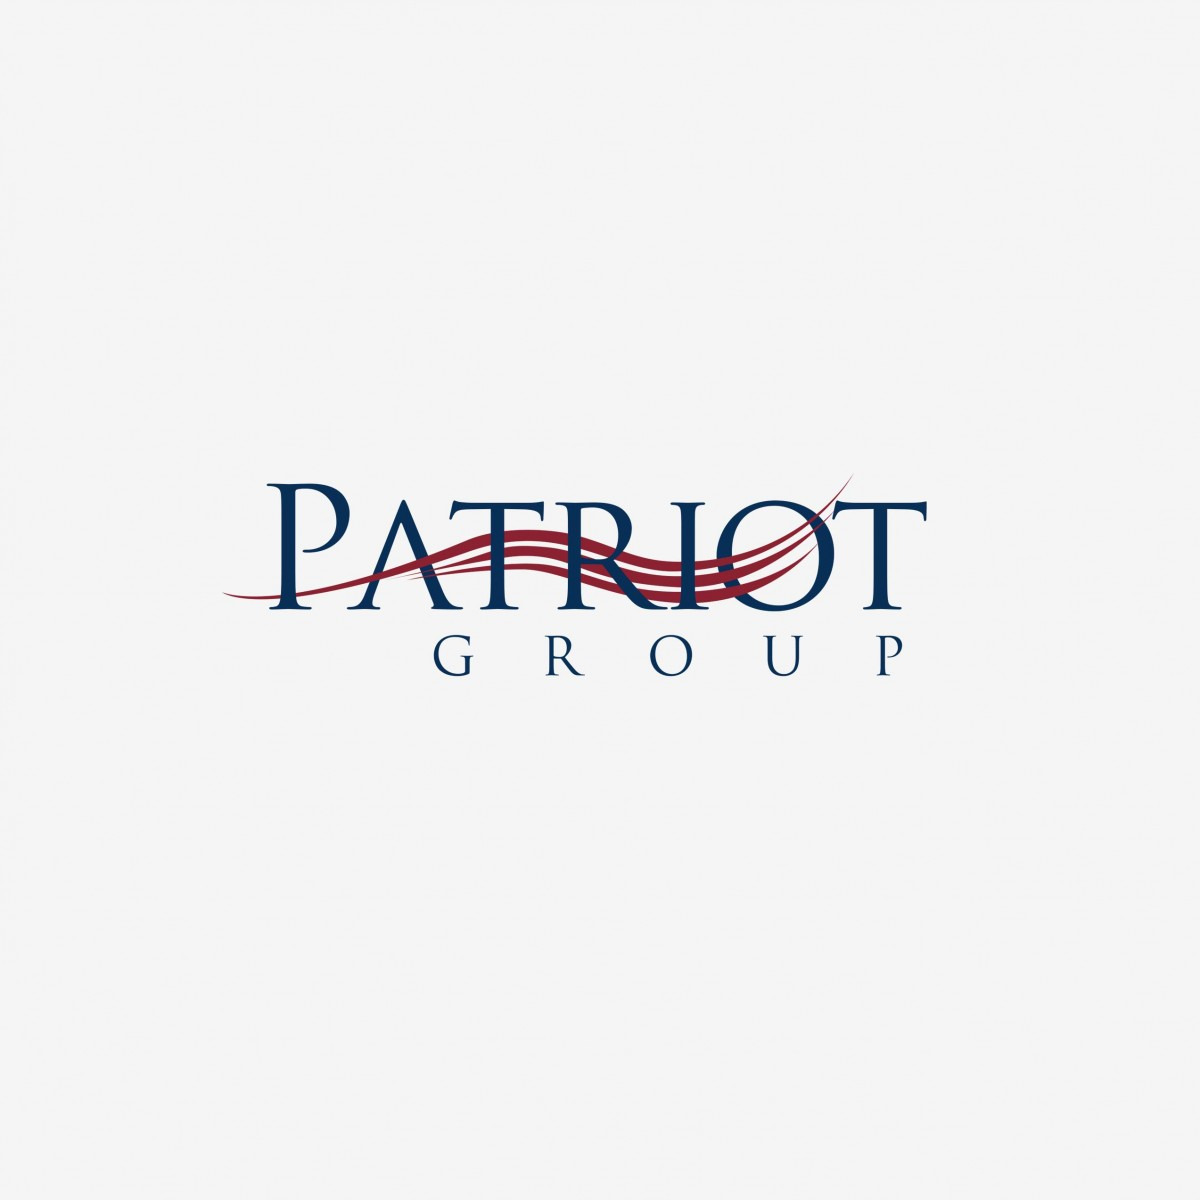 The Patriot Group corporate identity